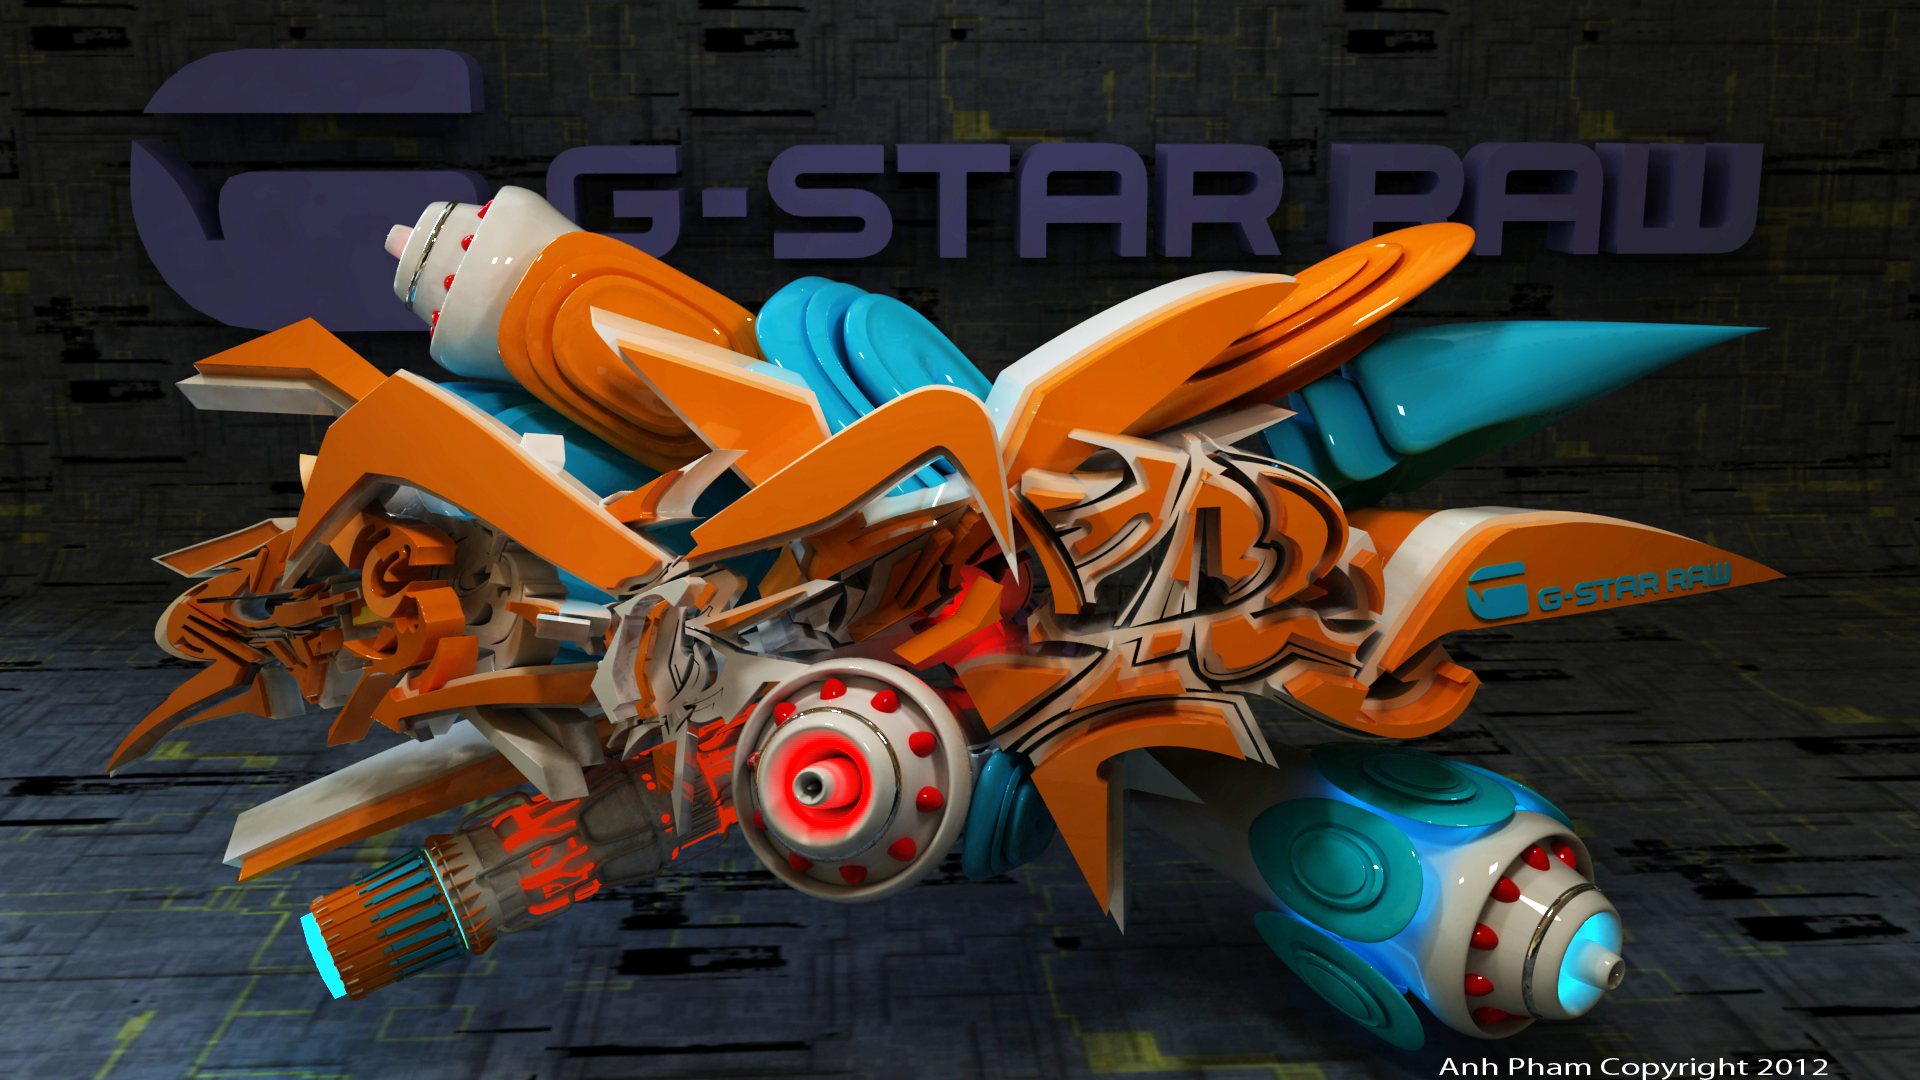 G Star Raw 3d Graffiti By Anhpham88 On DeviantArt